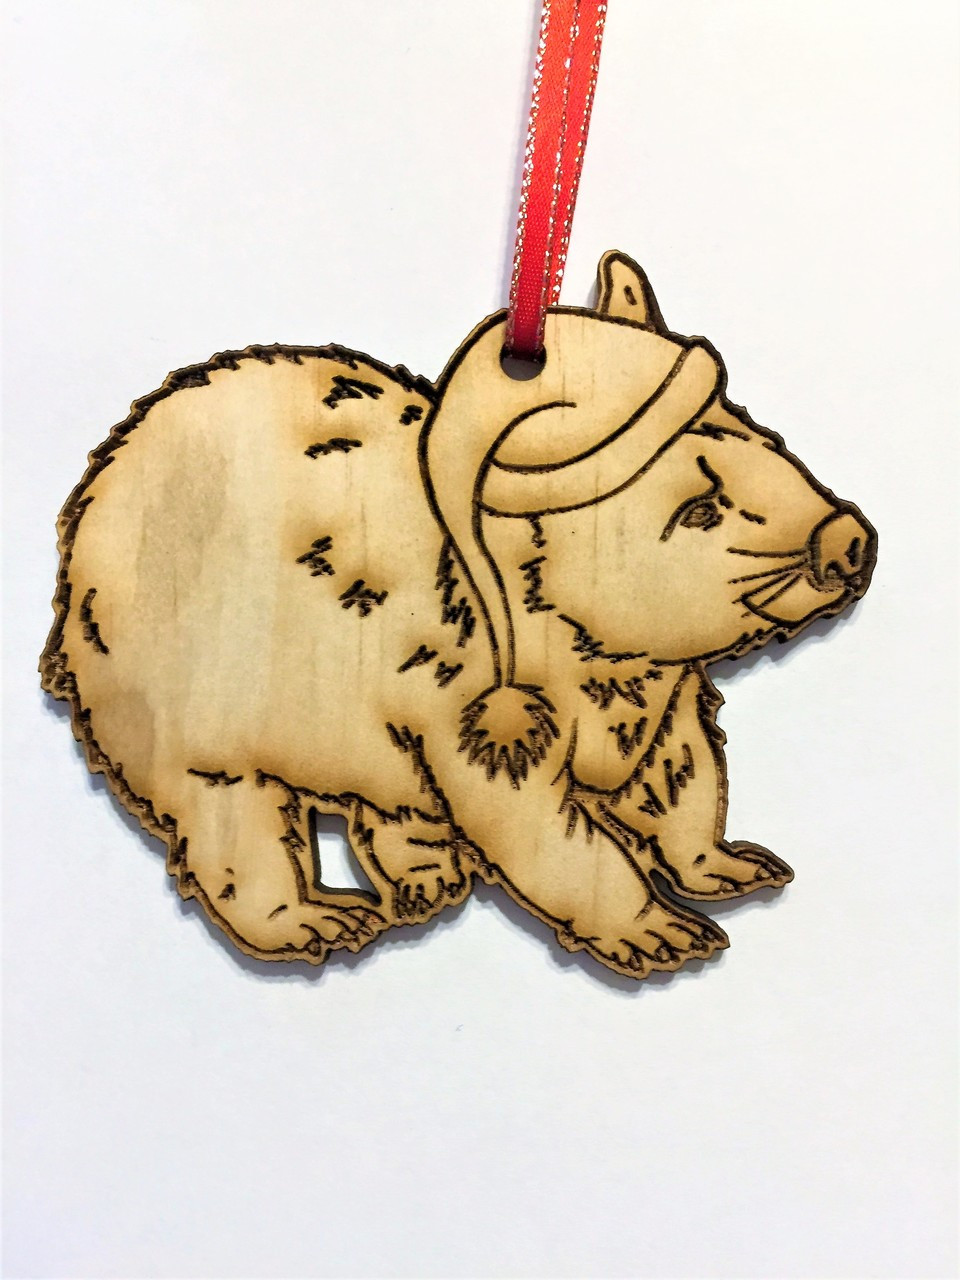 Wombat - Wooden Christmas Tree Ornament - 10cm high